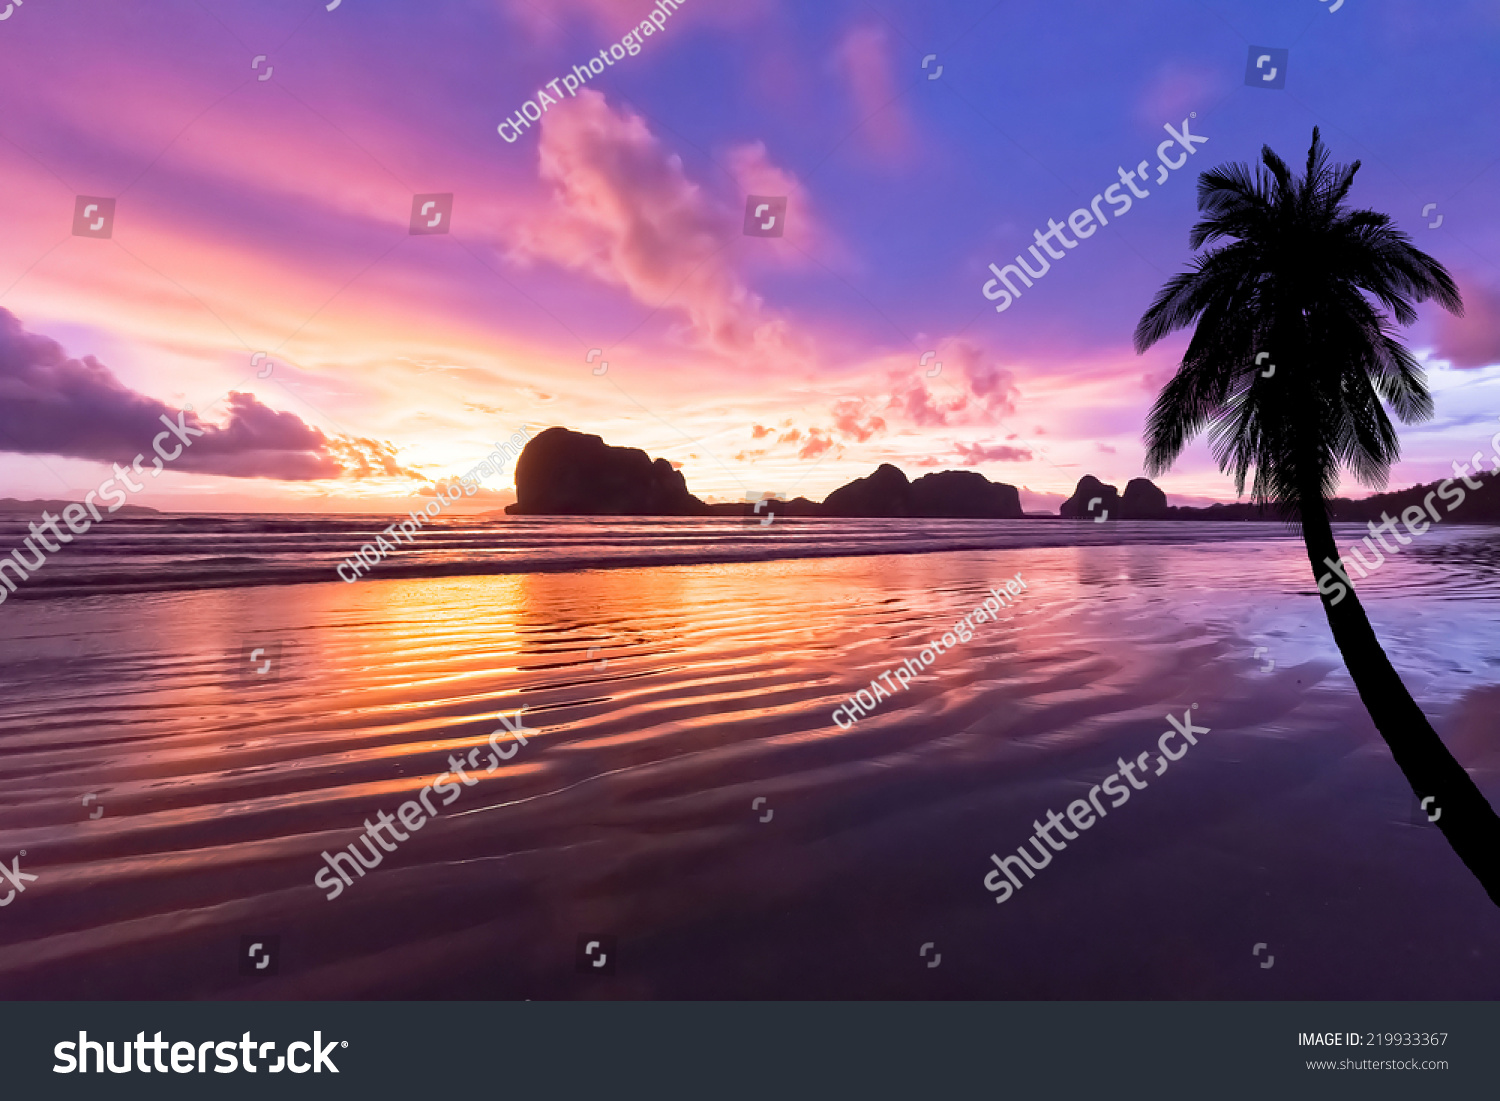 Pink Sand With Sunlight Over Island Sunset Background Pak Meng Beach Trang Thailand